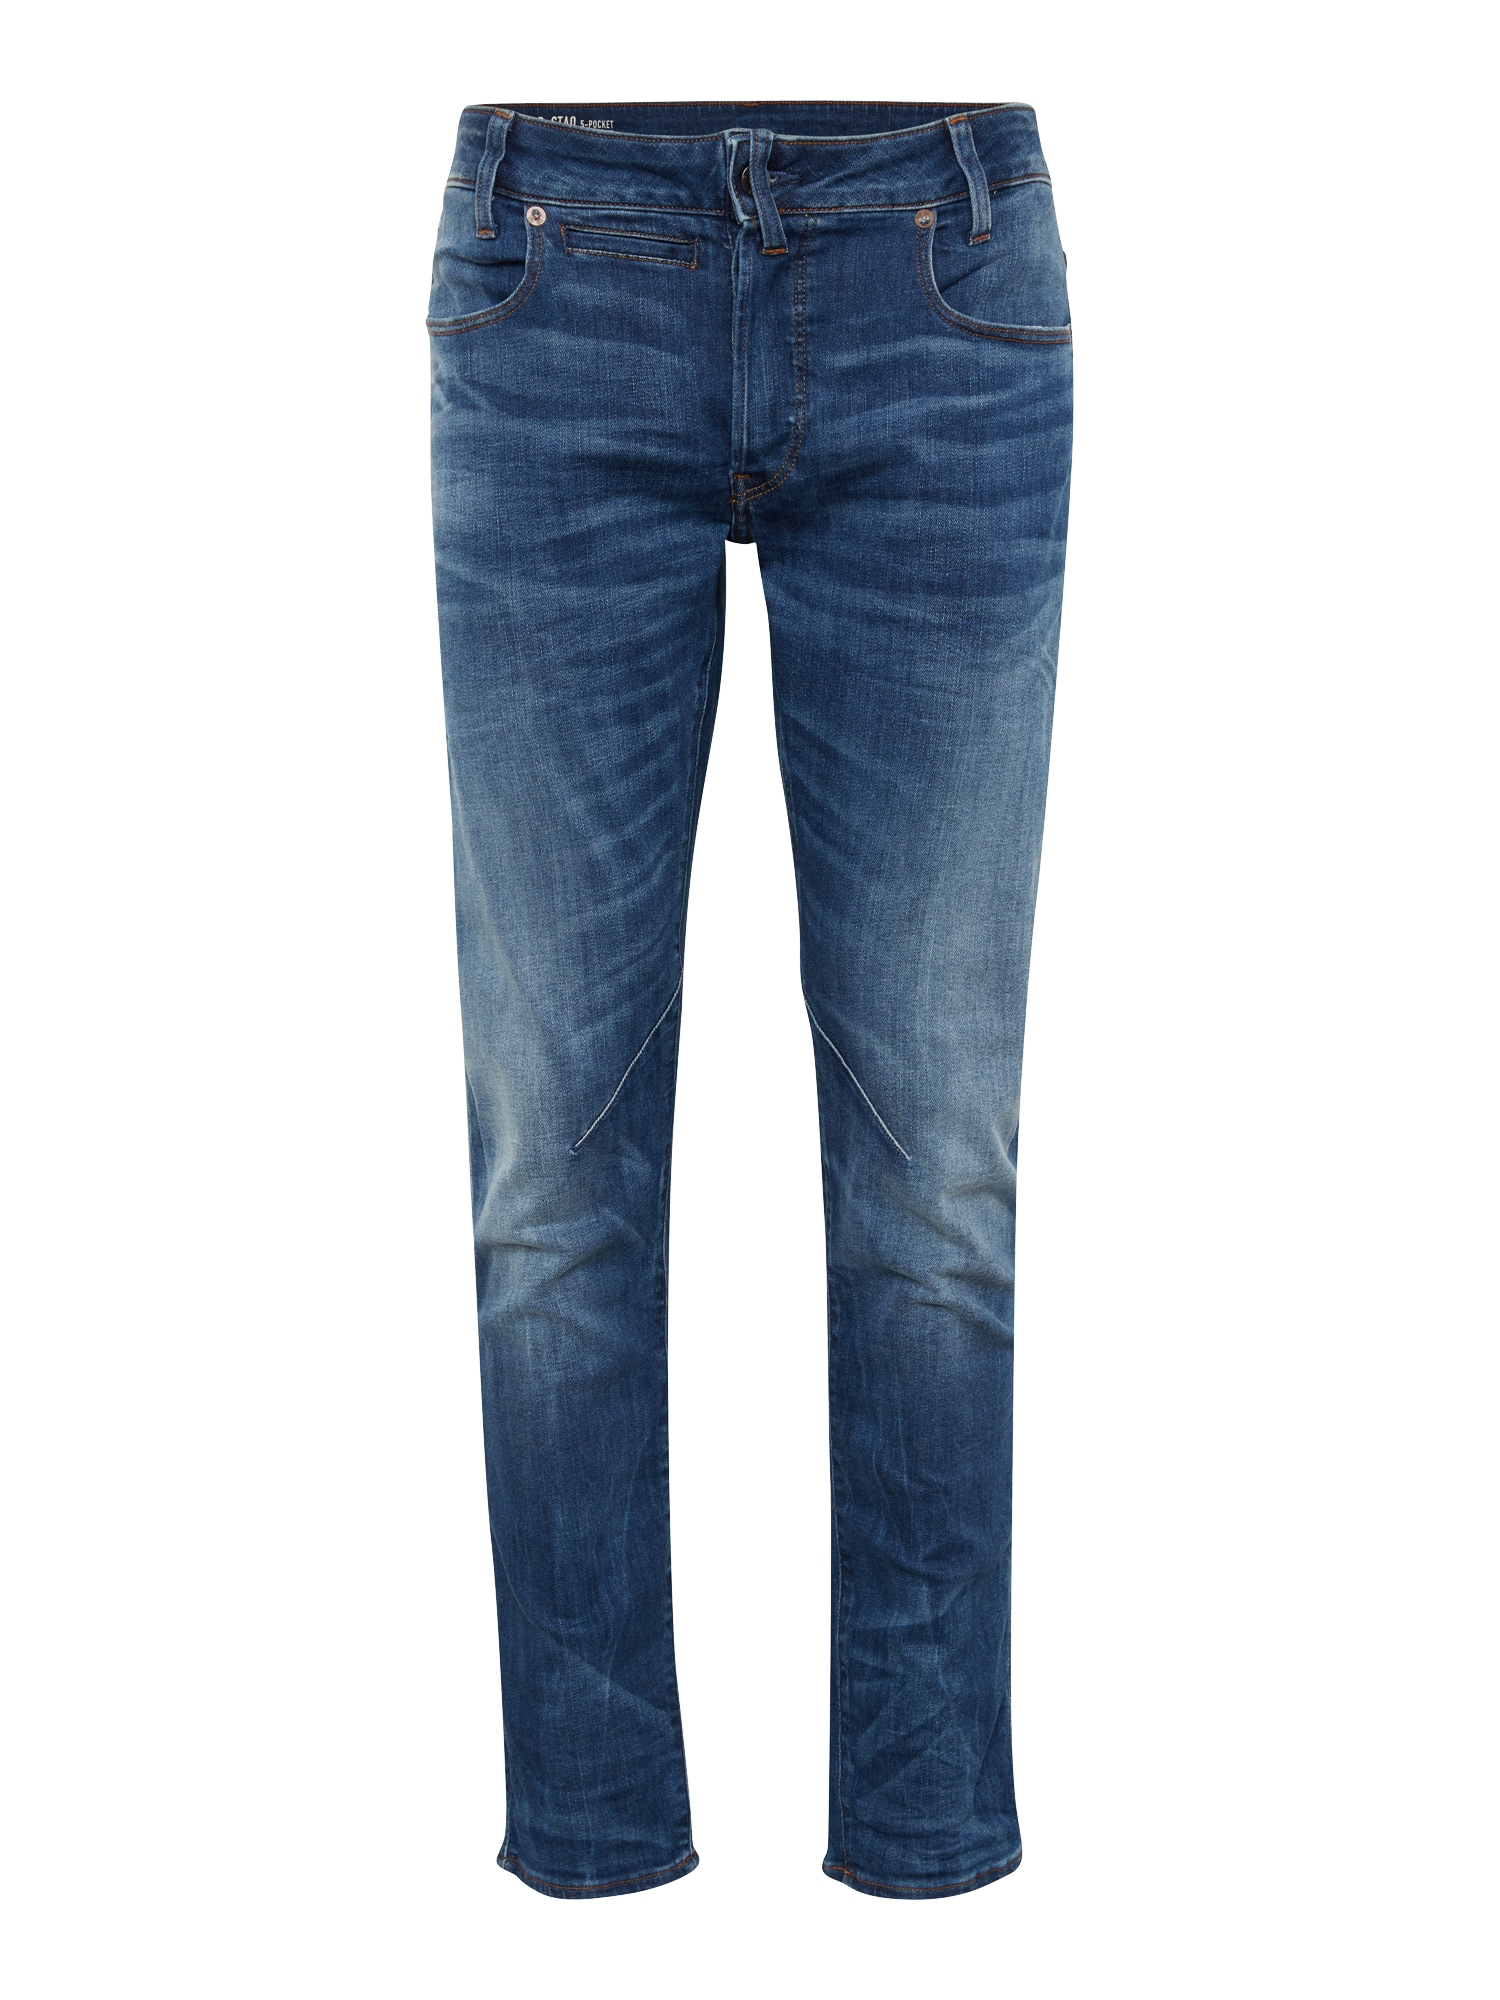 G-STAR RAW Heren Jeans D-Staq 5-pkt Slim blue denim